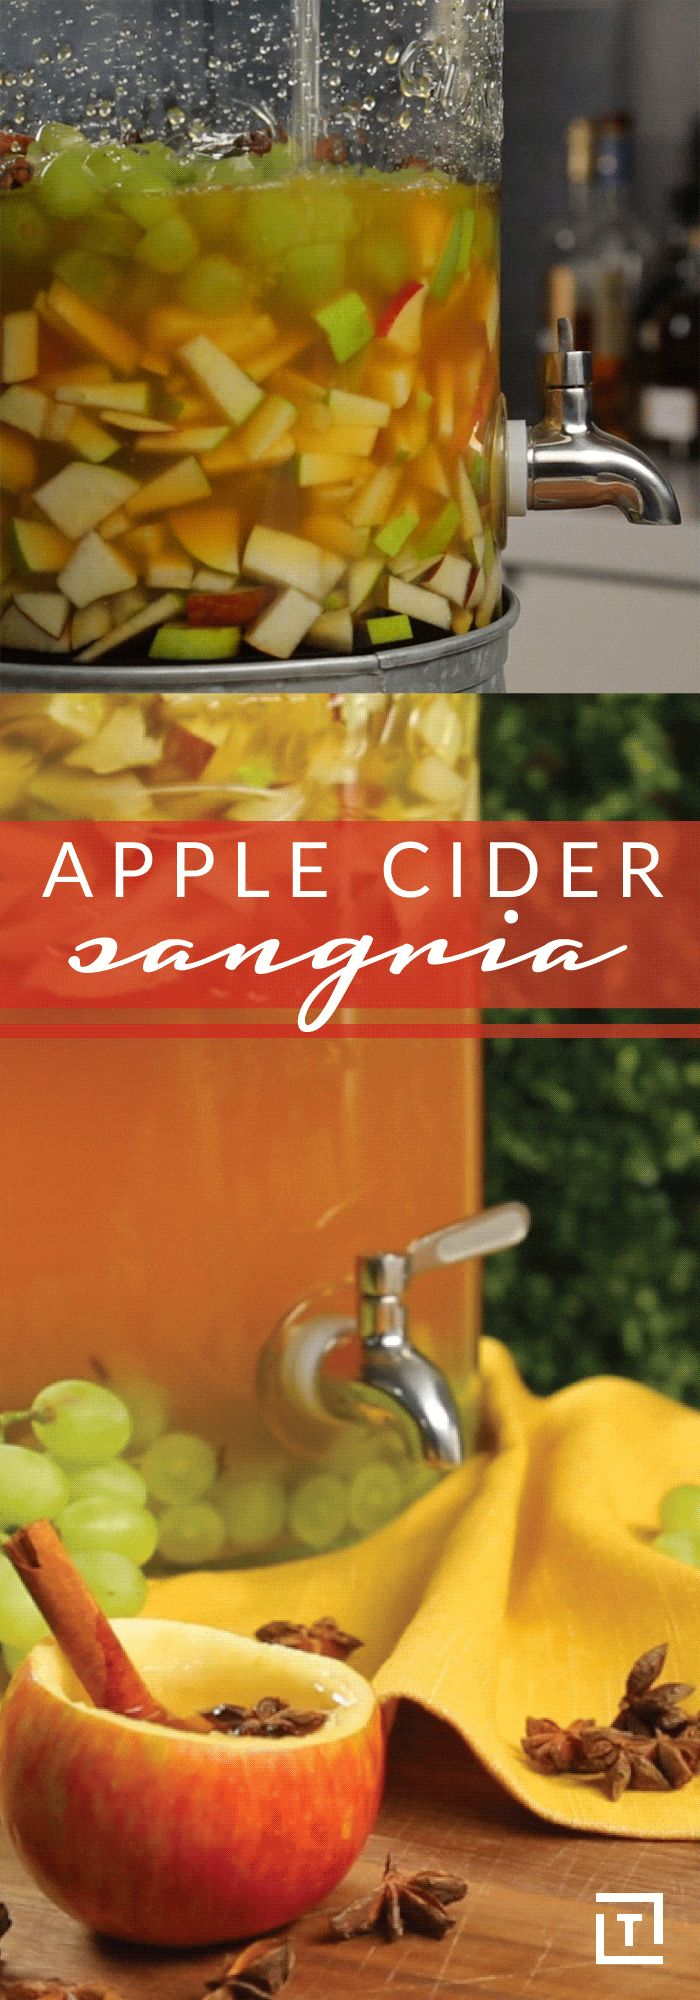 With a hearty serving of apples, pears, cinnamon, apple cider, vodka, and wine, Inspired by Charm's apple cider sangria is perfect for fall. A drink like this deserves to be served in a My Life And Kids-inspired hollowed-out apple, because what else would you serve it in?